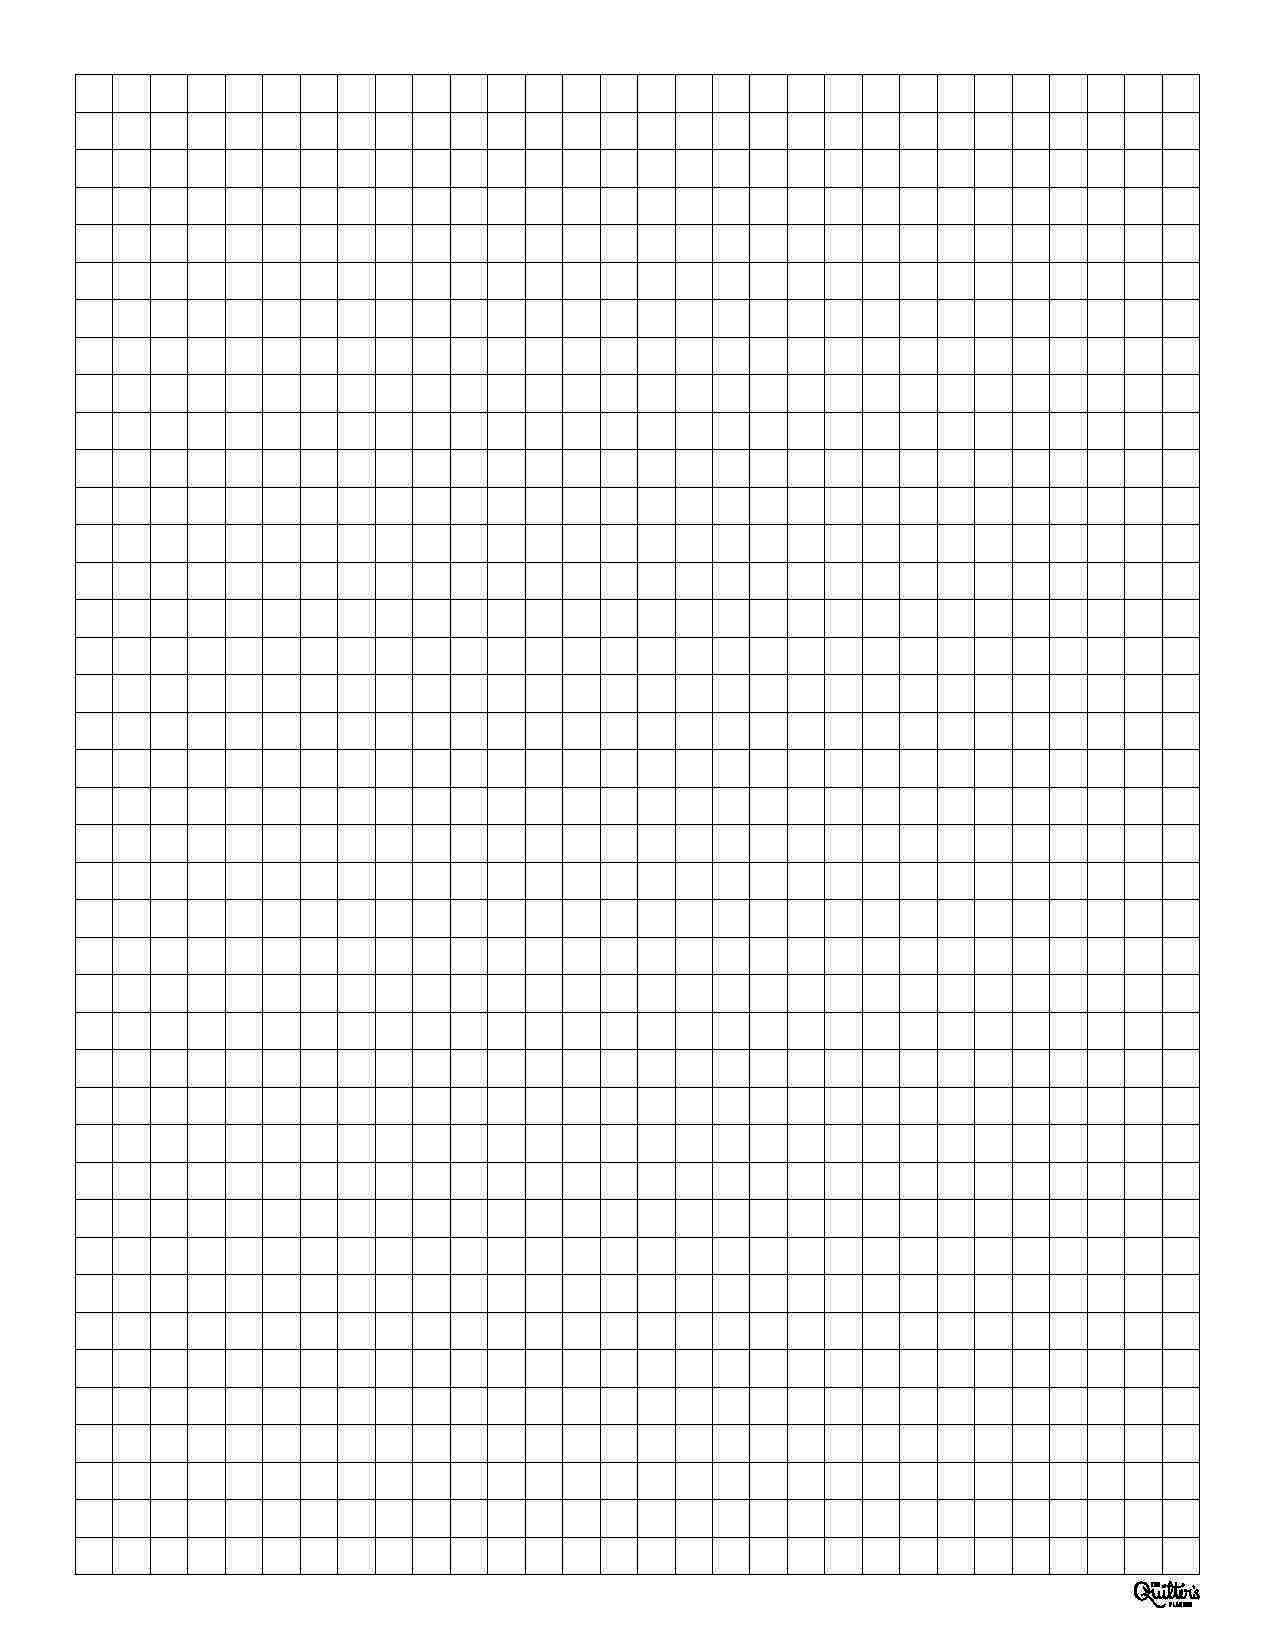 We all know that quilters love graph paper! Here are free